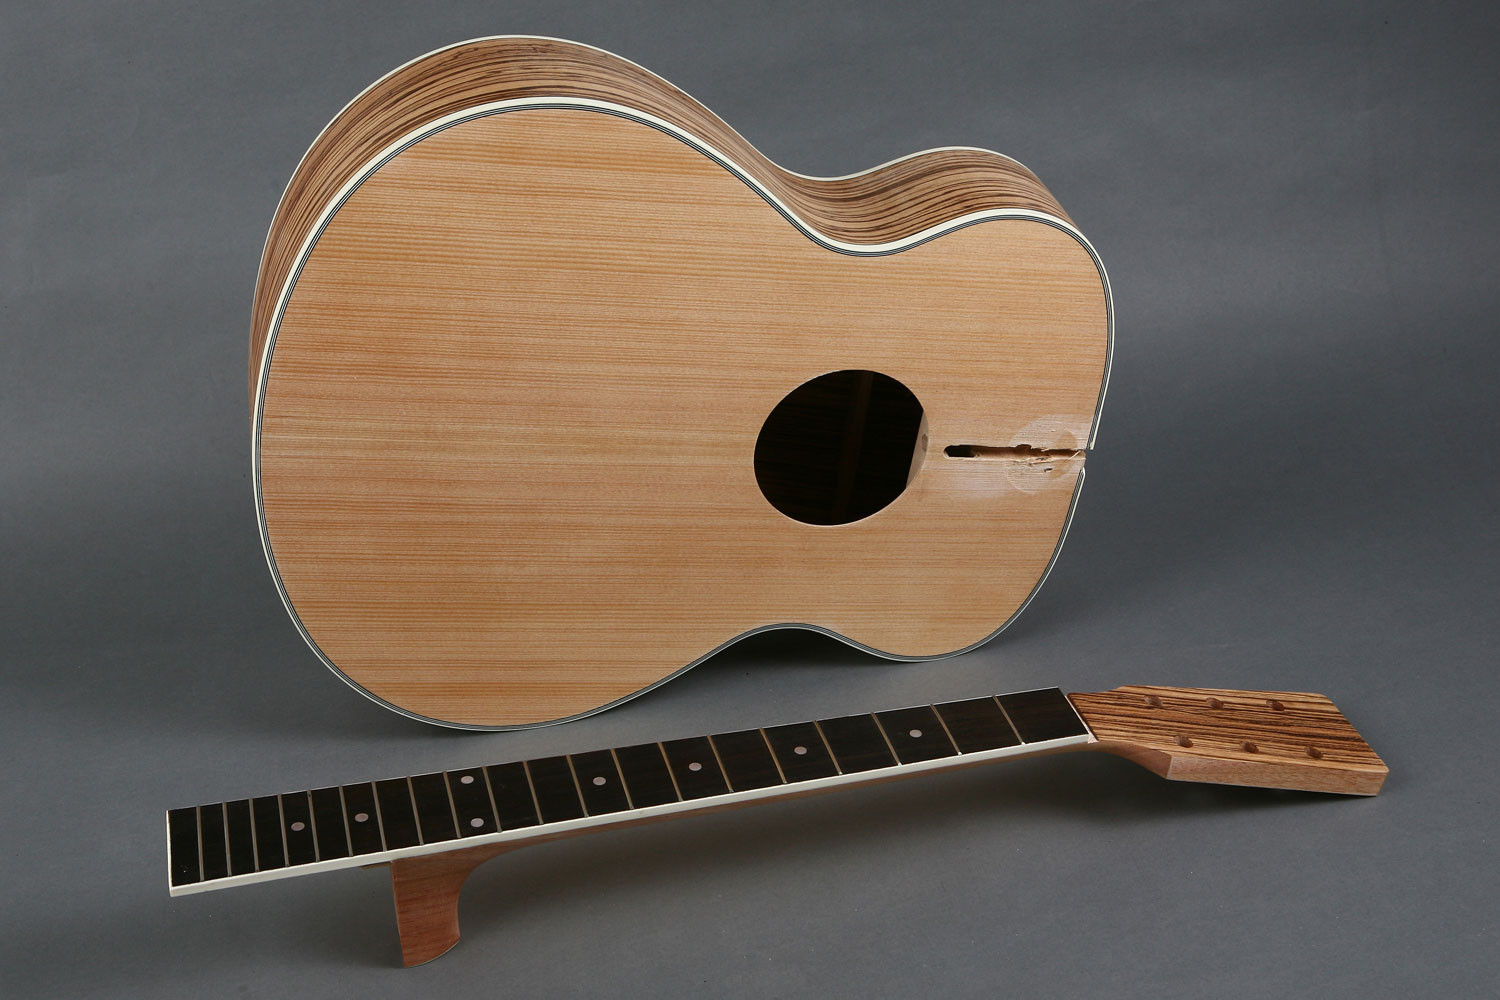 Best ideas about DIY Acoustic Guitar Kit . Save or Pin Spruce Top Jumbo Acoustic Guitar DIY Kit GK S4022 BYGuitar Now.